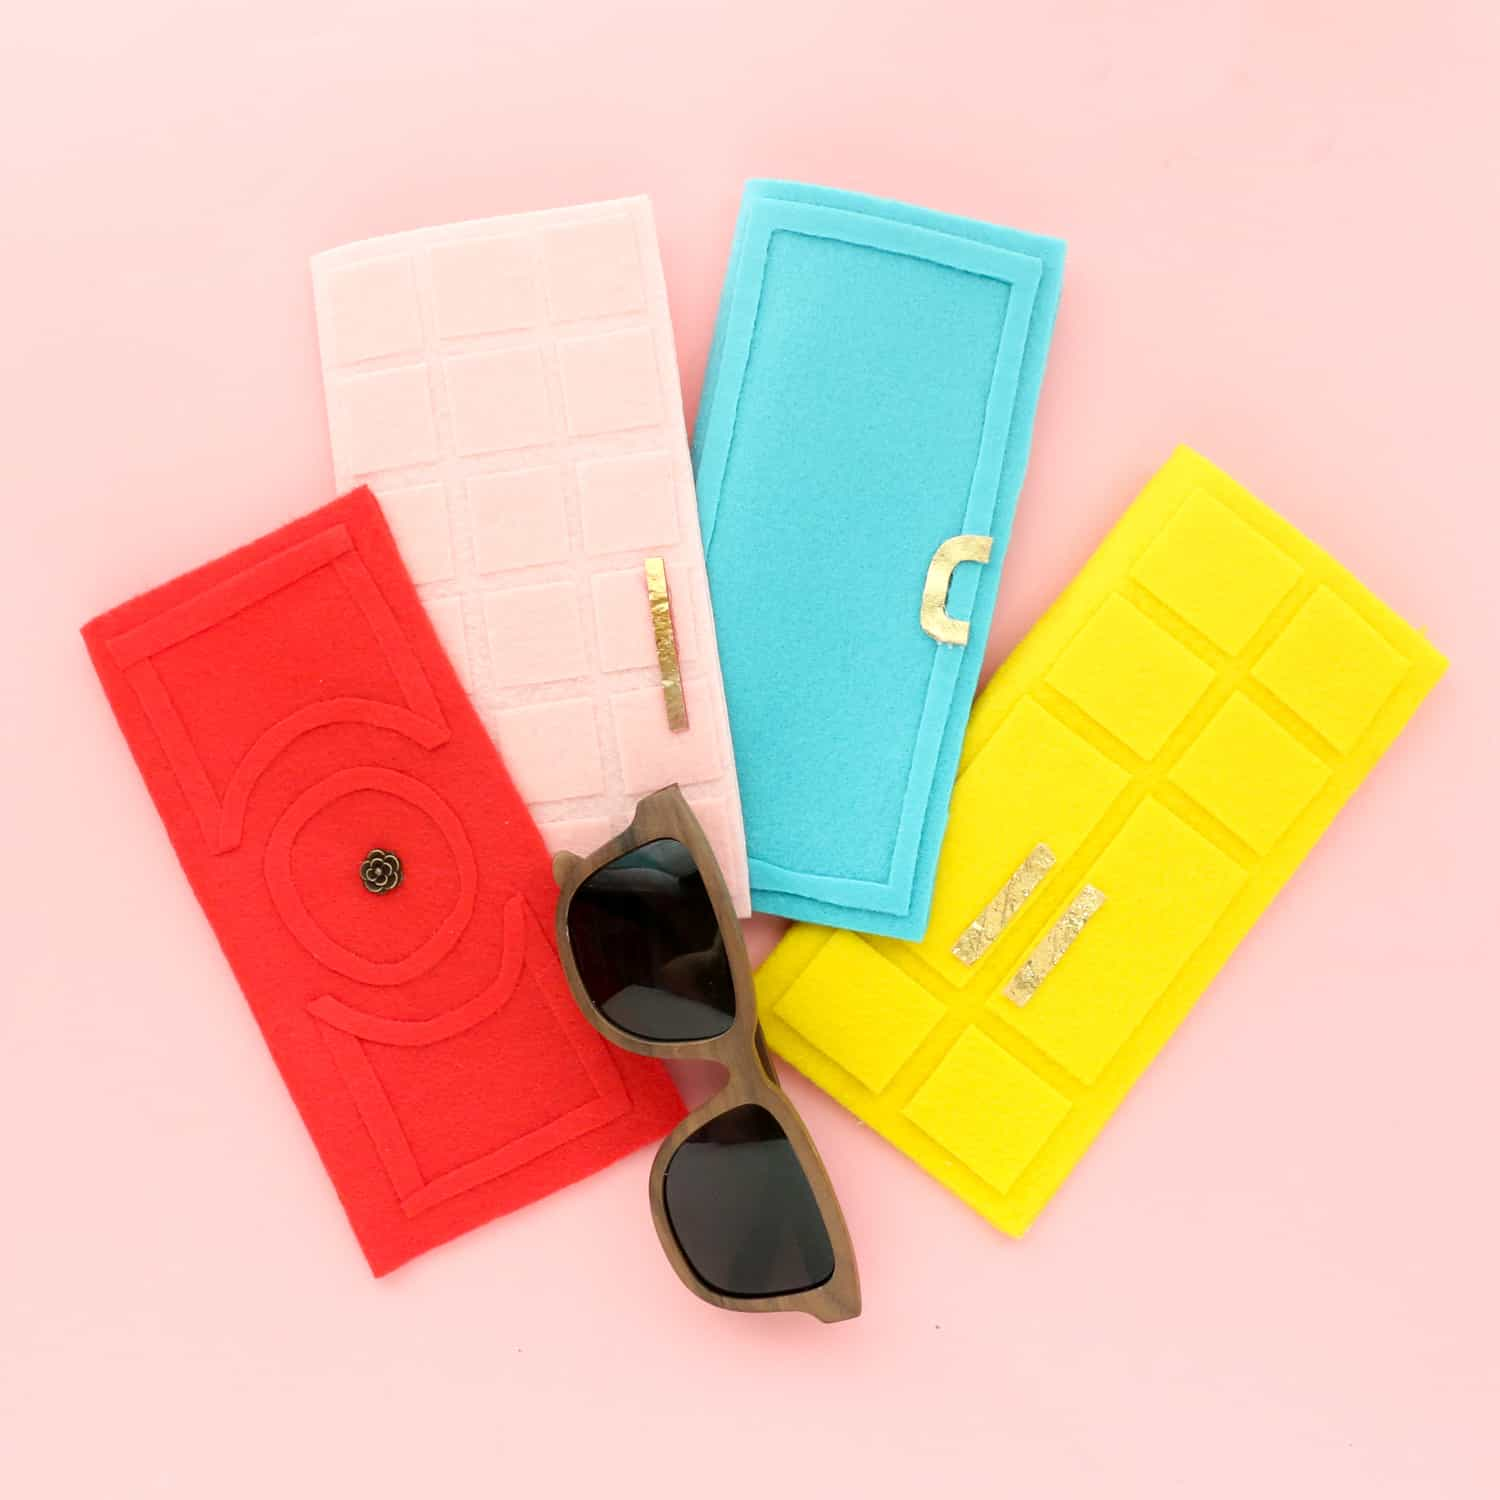 DIY colorful sunglasses cases inspired by ornate doors